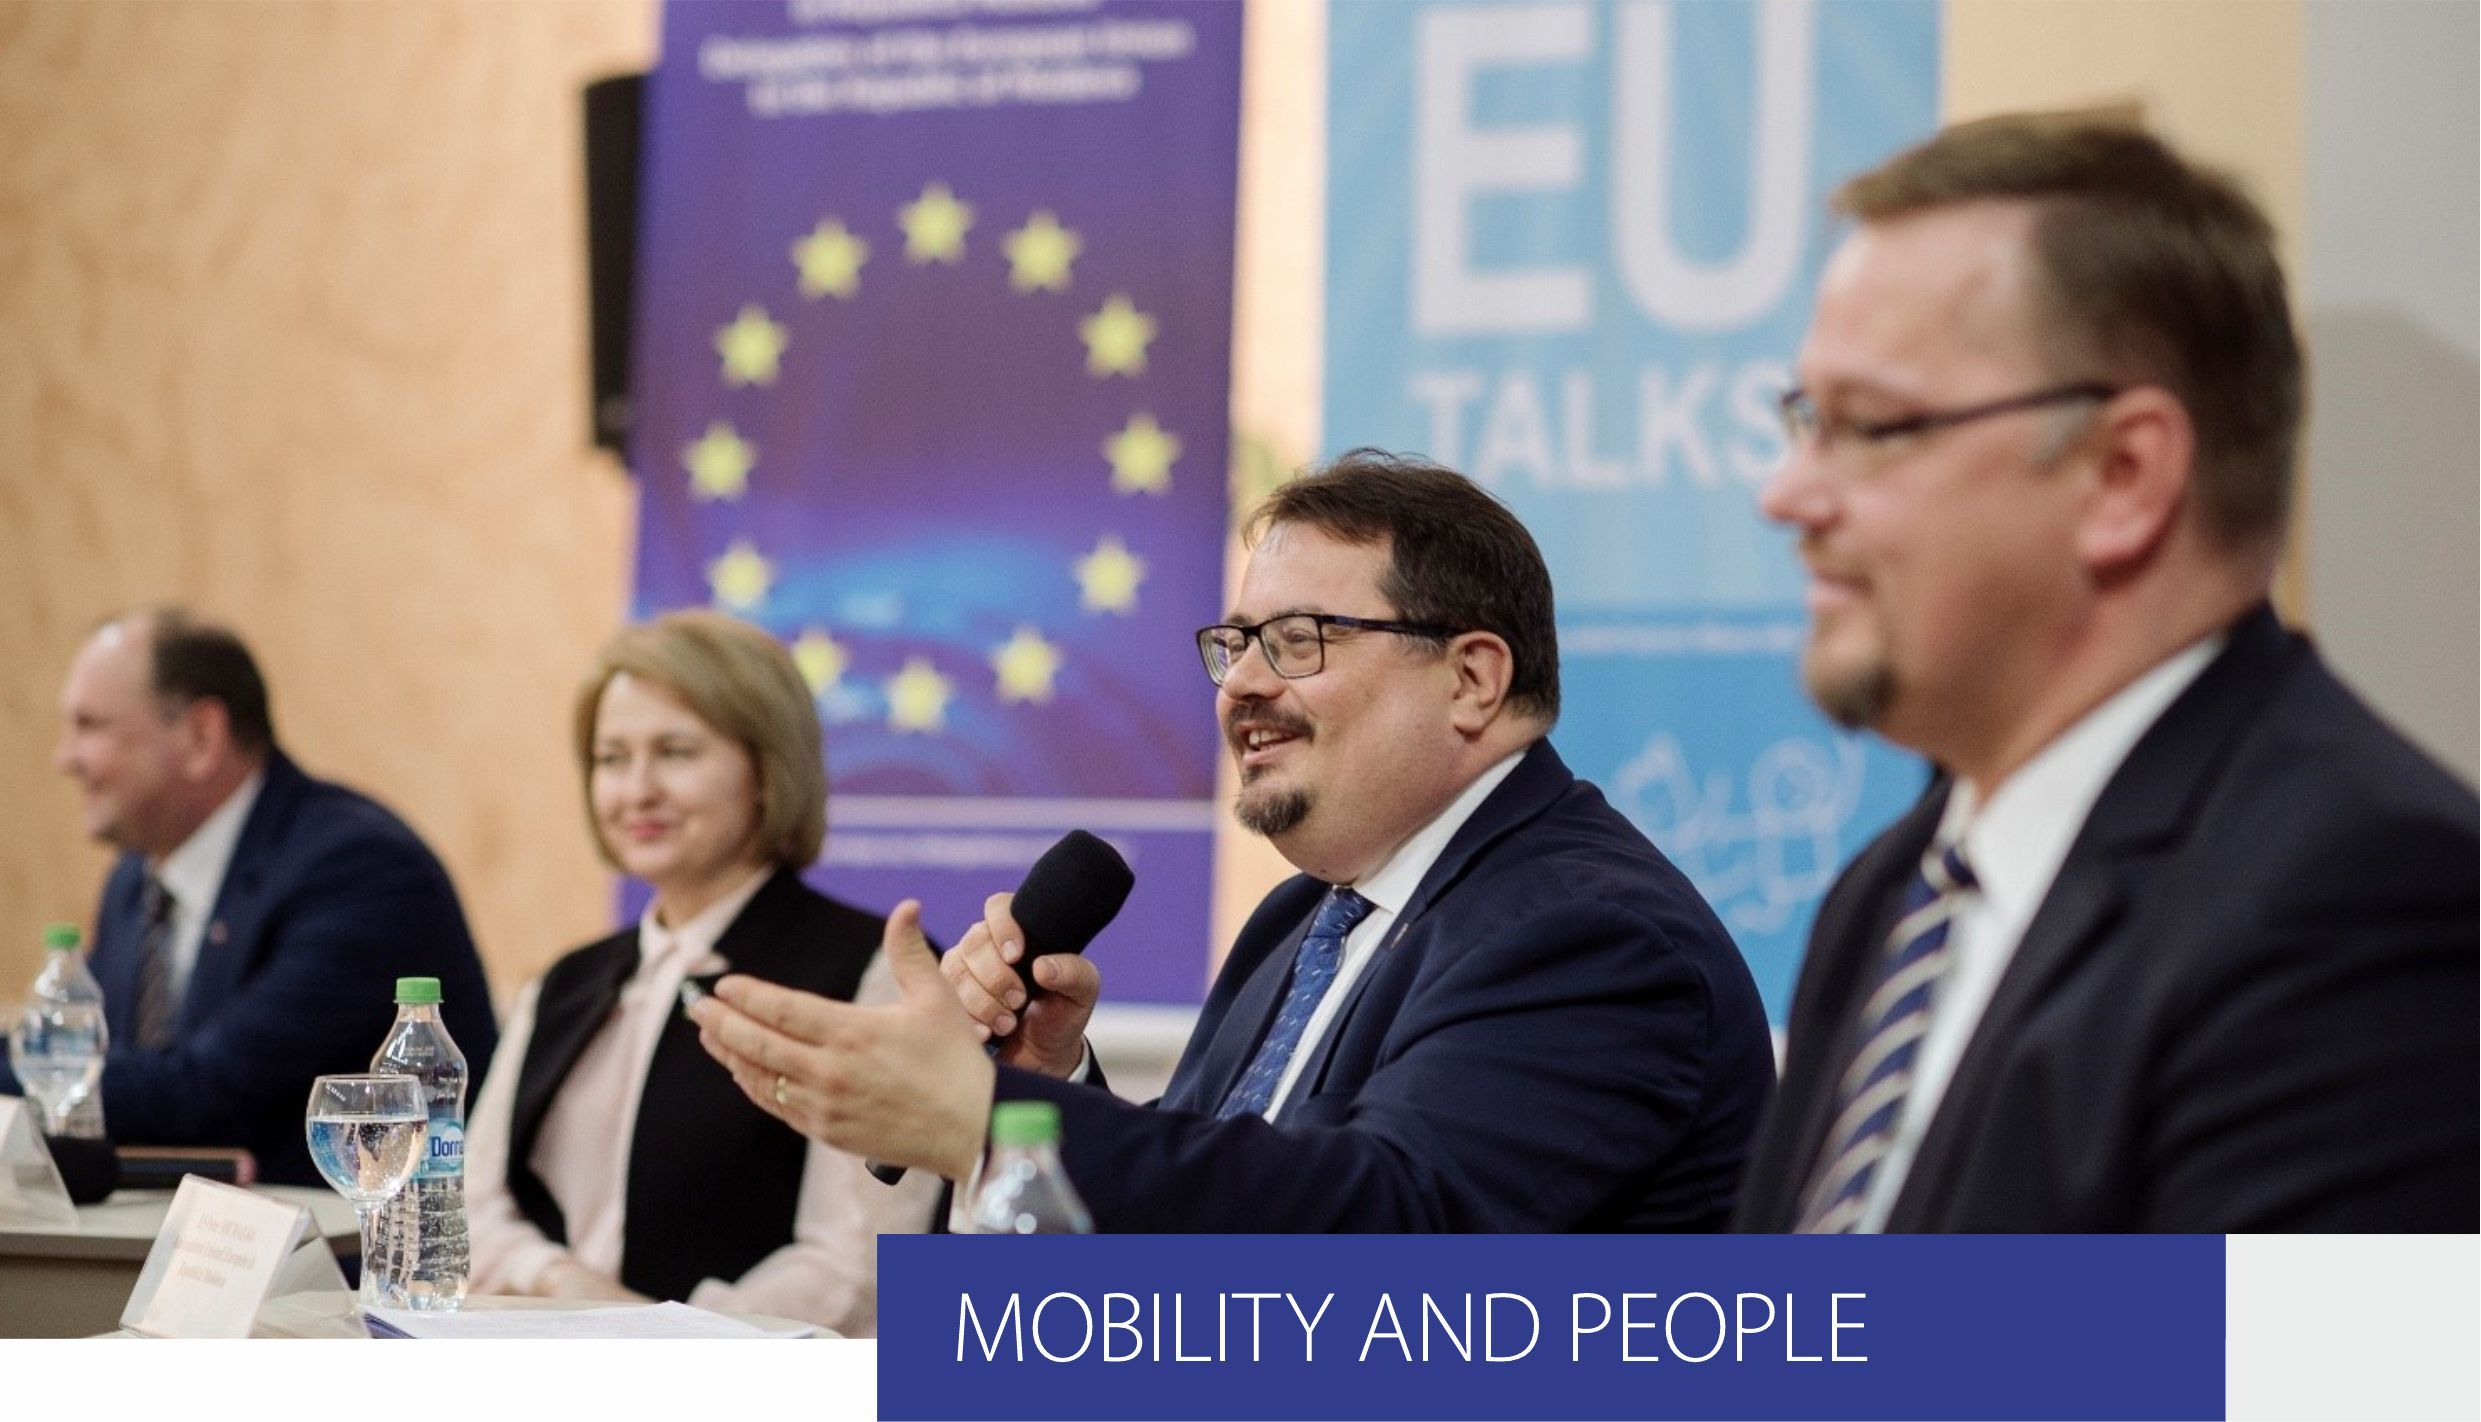 EU talks to young people